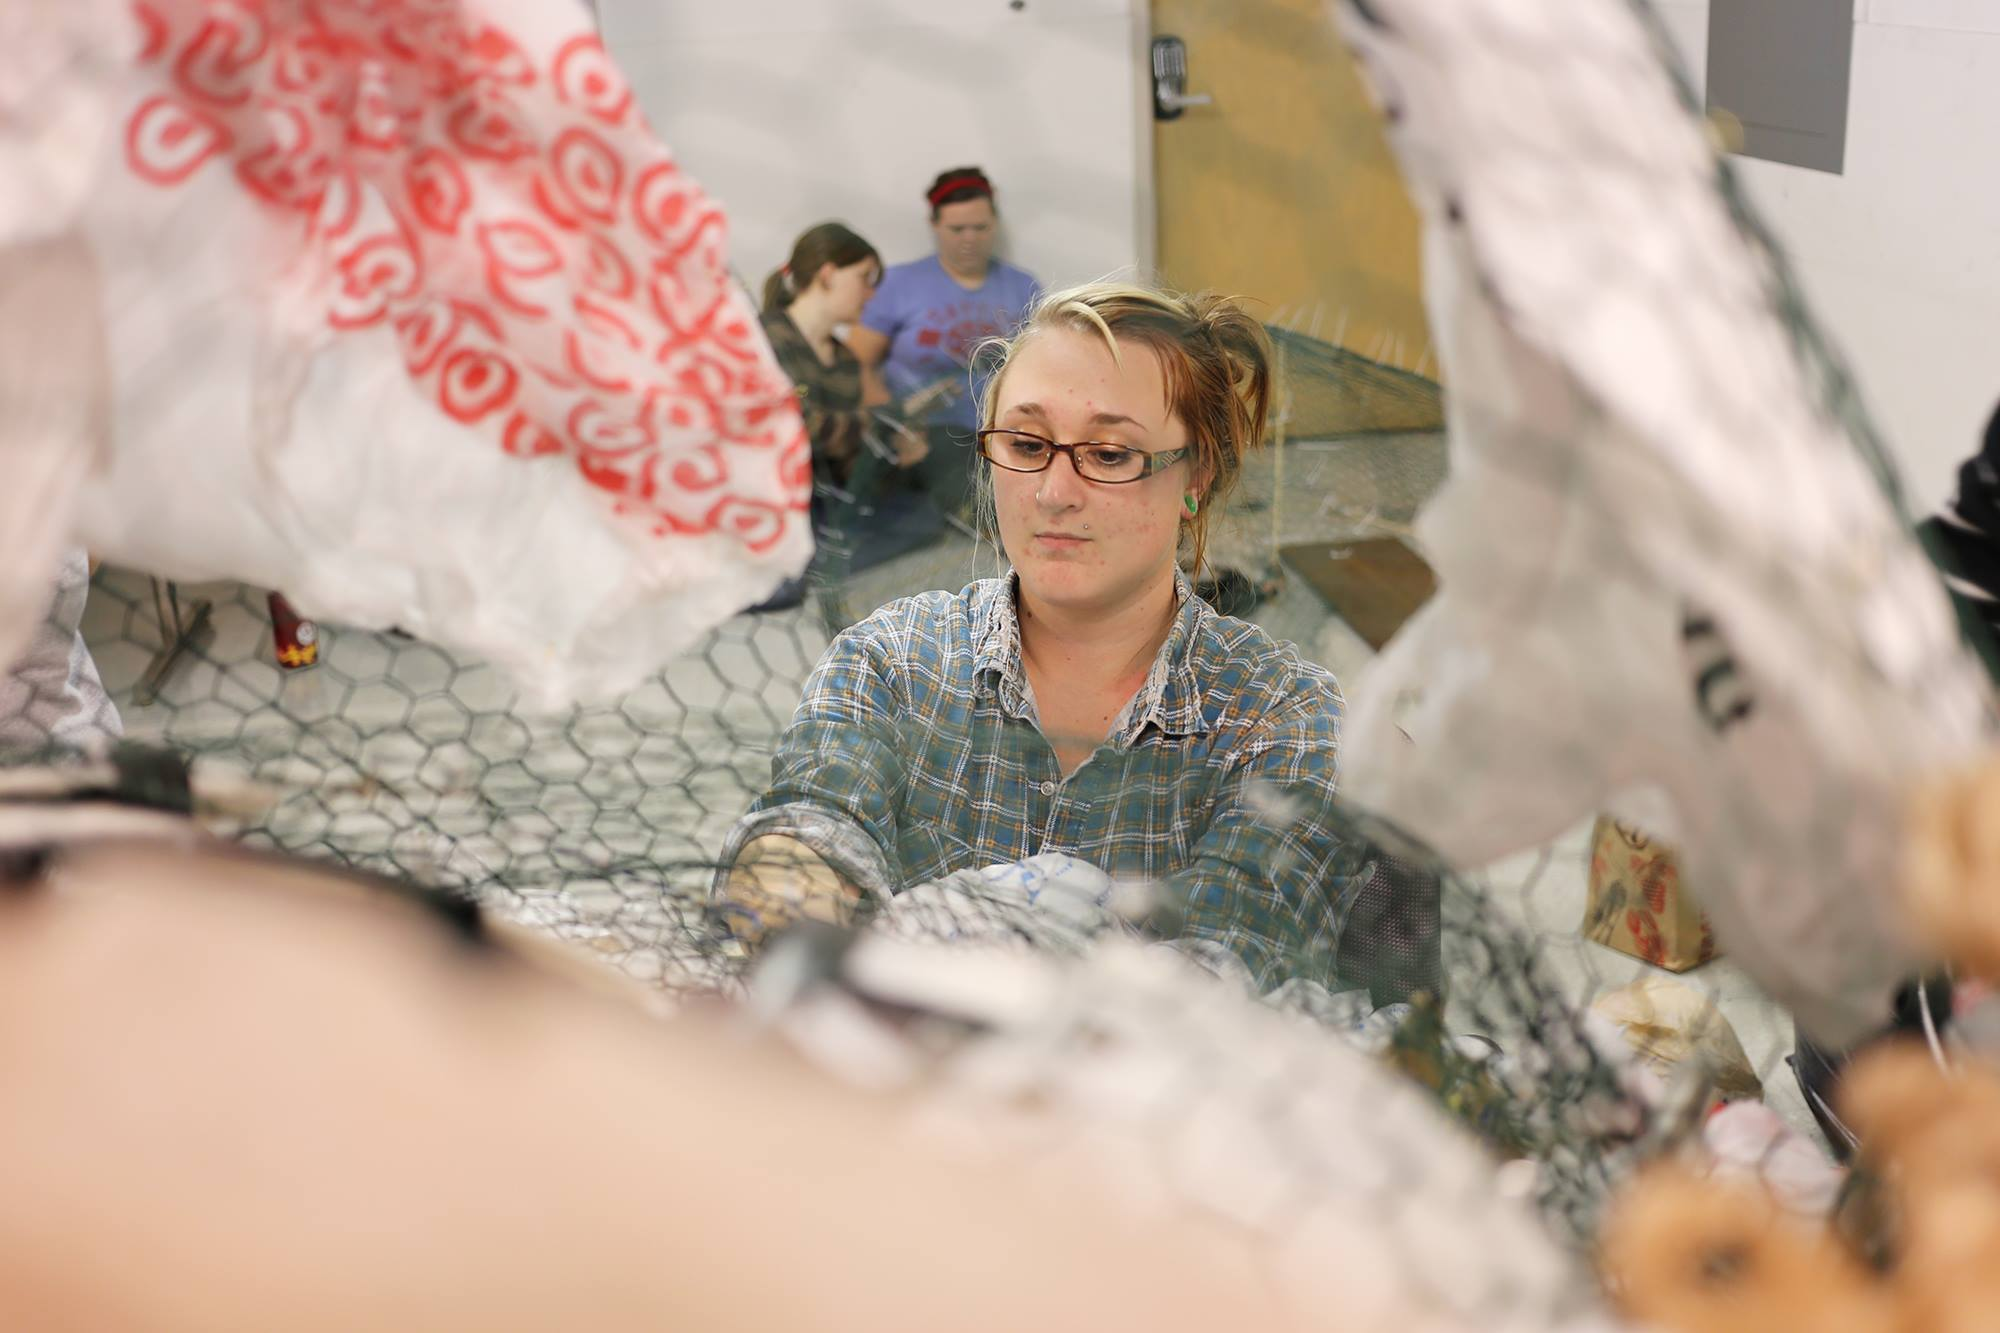 AmeriCorps member, Nicole, working with chicken wire to build an enviro-character for Earthfest